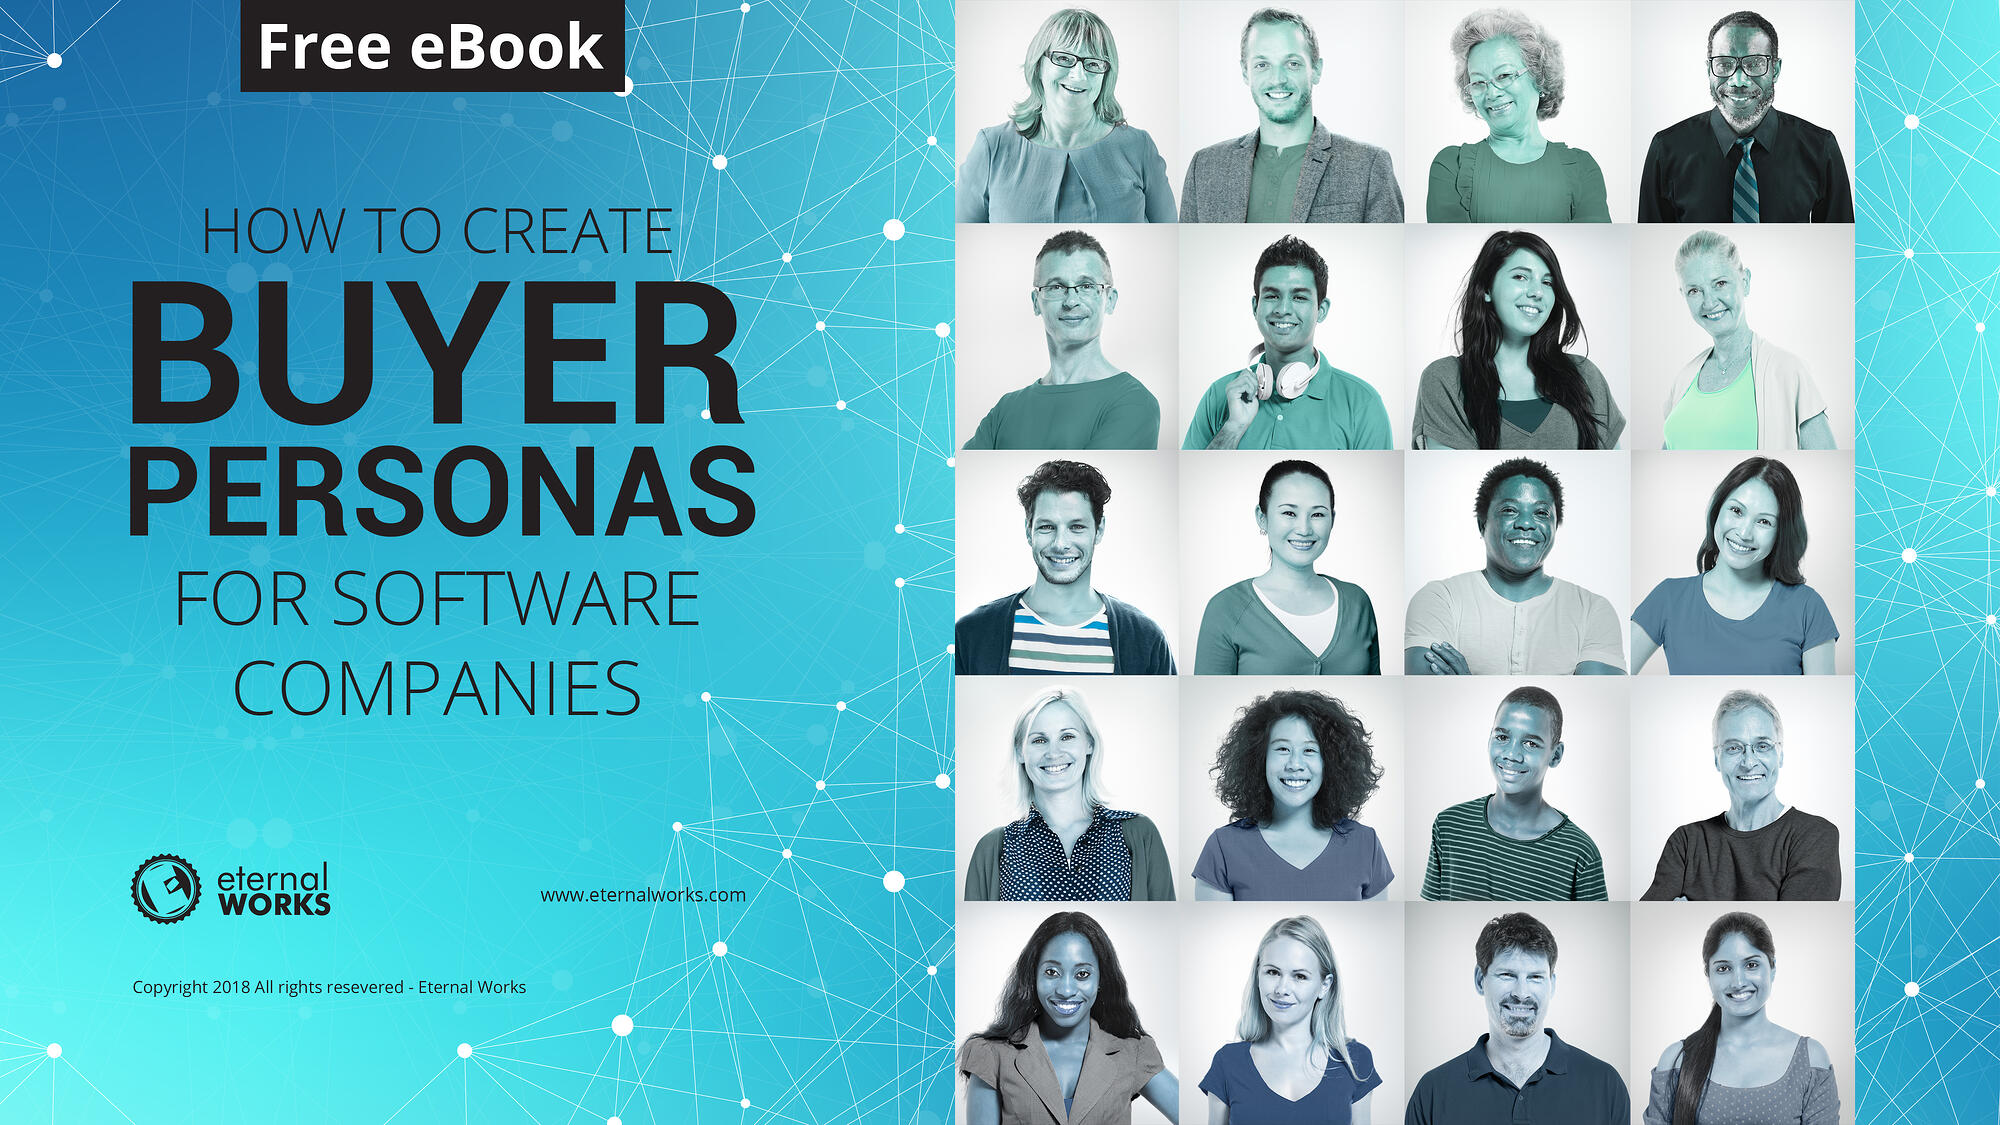 HOW TO CREATE BUYER PERSONAS FOR SOFTWARE COMPANIES